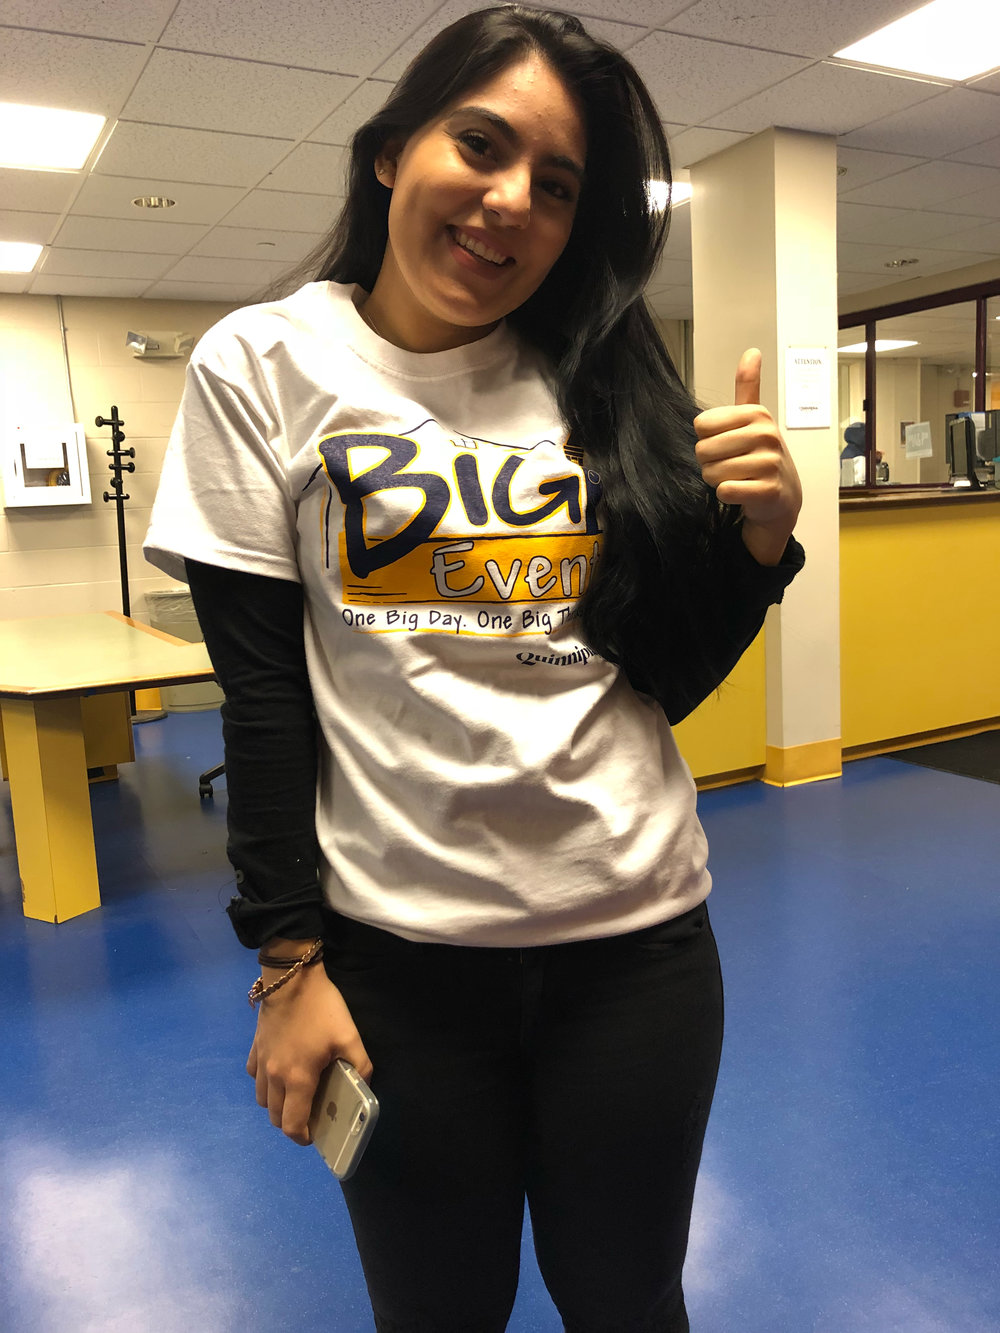 Quinnipiac student Zurama Rodriquez gets ready to head out to volunteer.